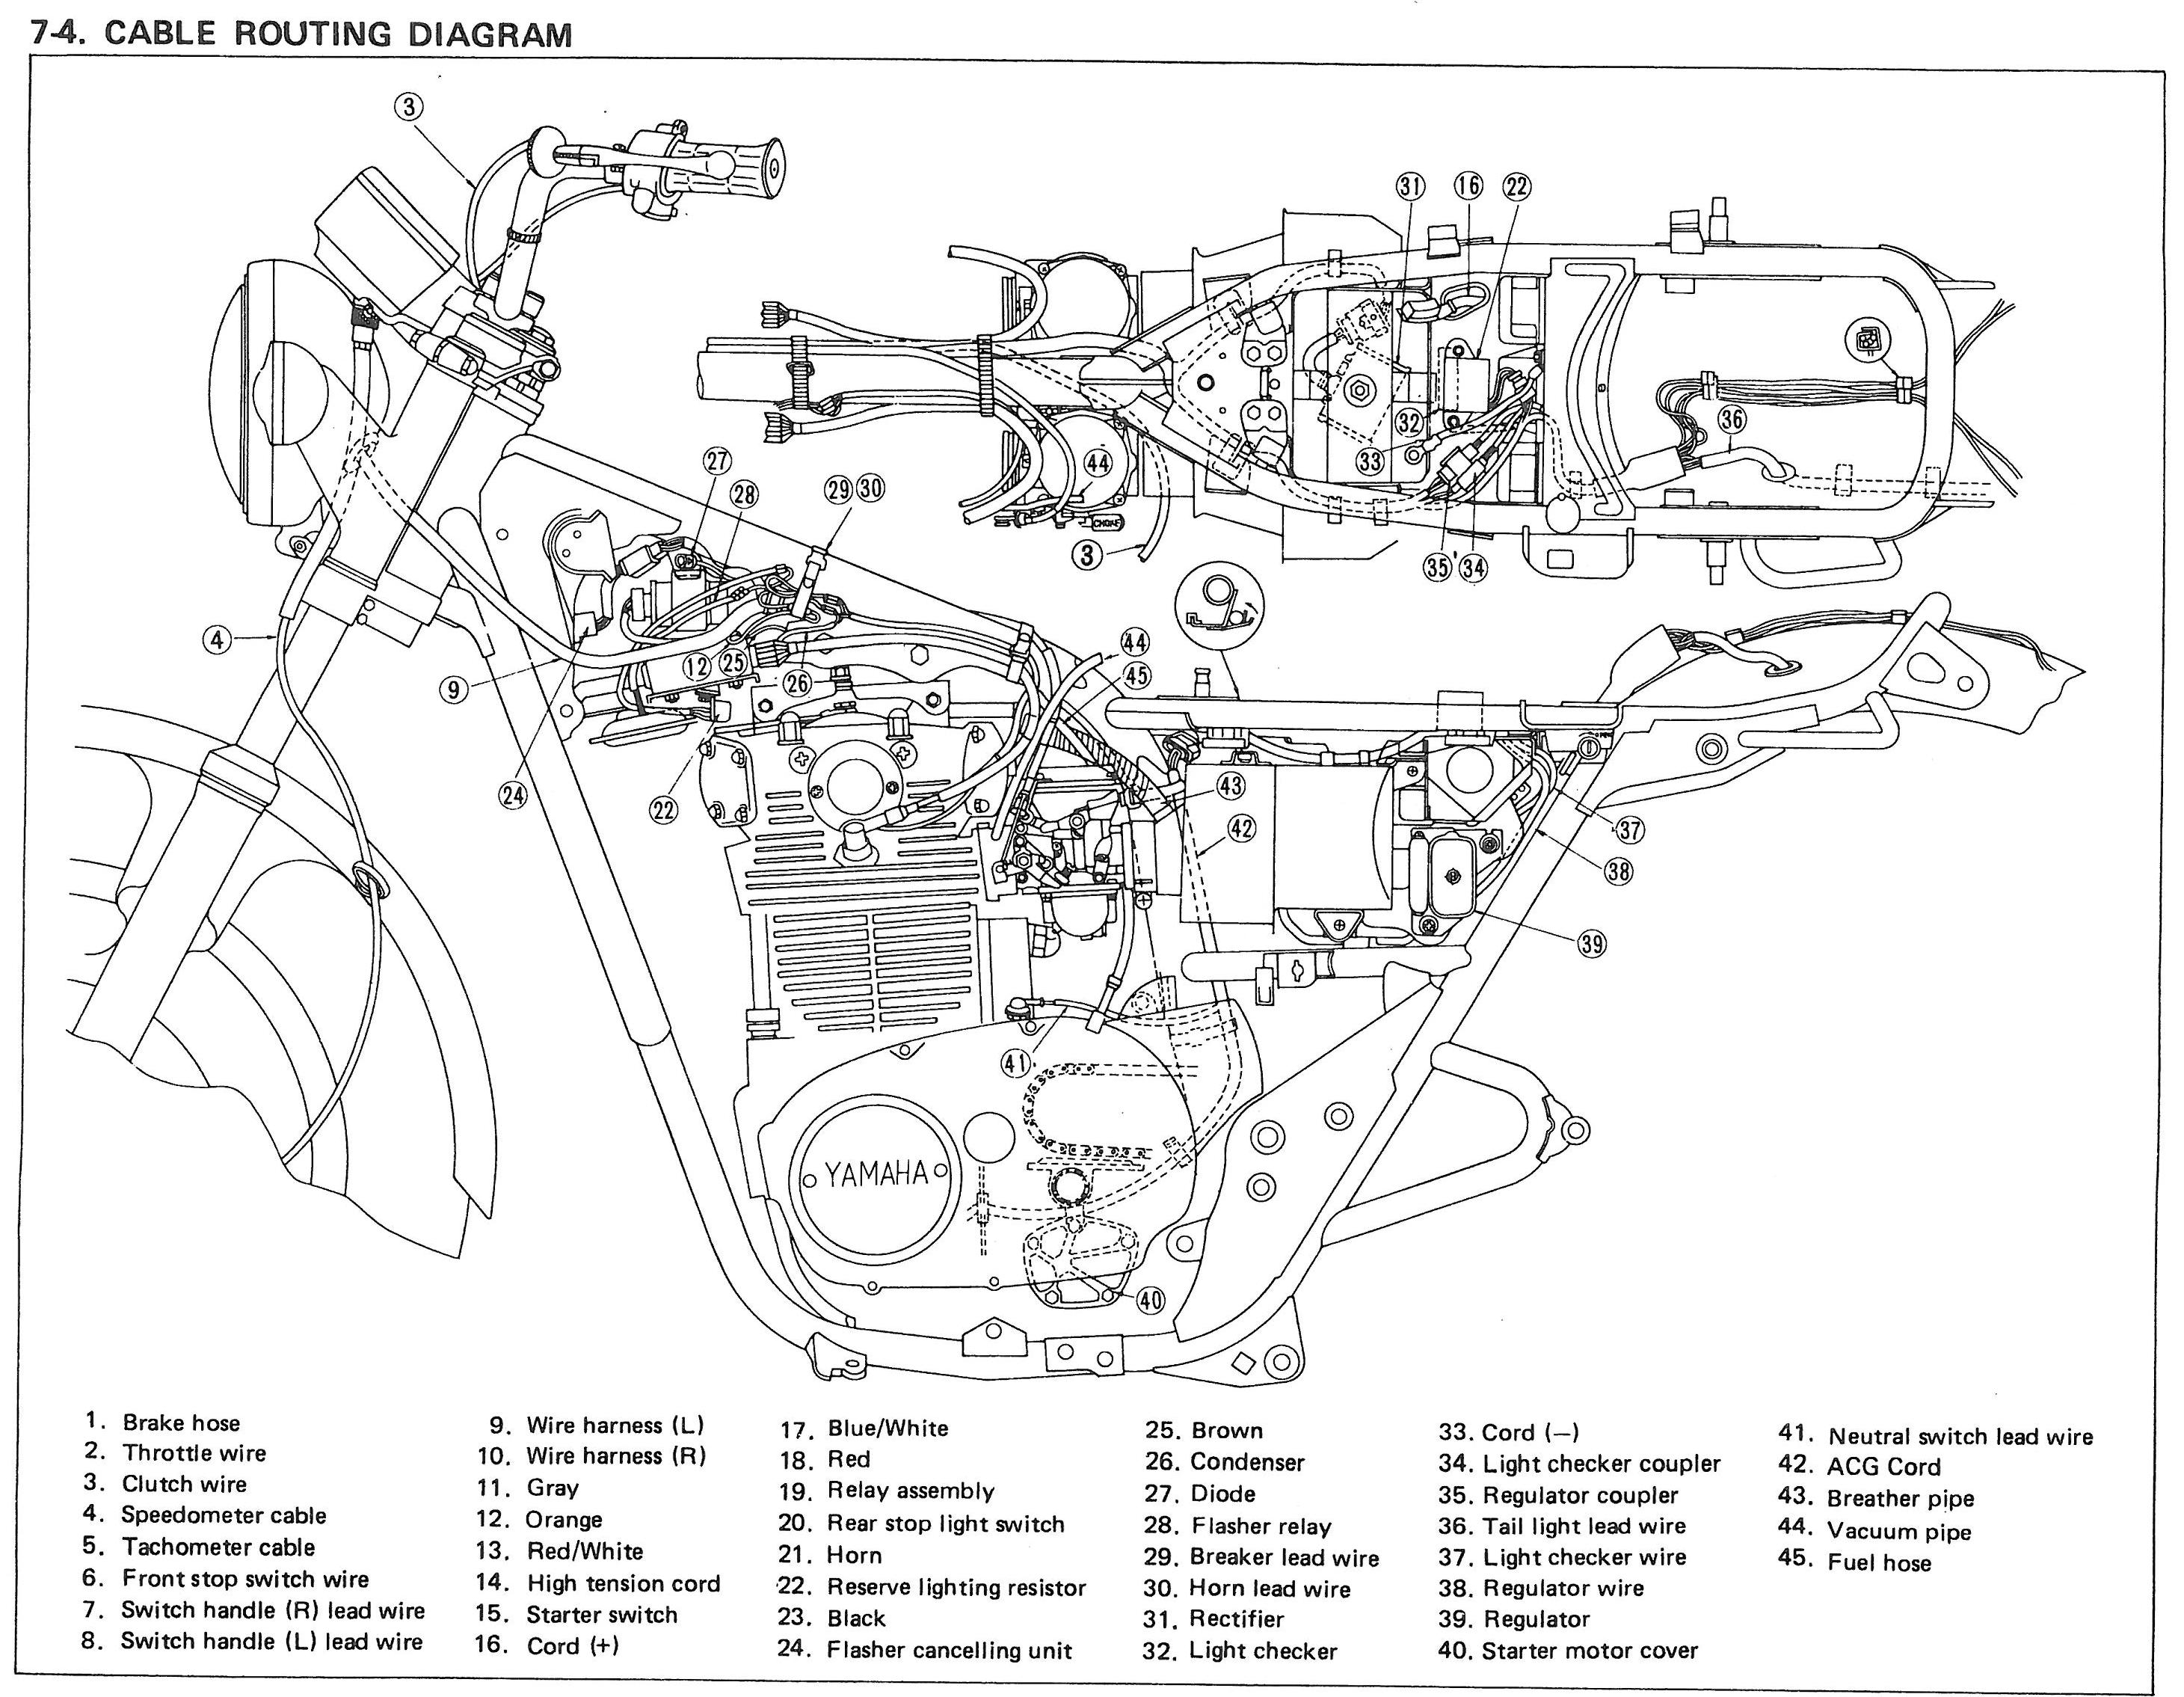 1978 Xs650 Wiring Diagram List Of Schematic Circuit 1976 Kz400 78 Xs E Se Thexscafe Rh Thexscafedotcom Wordpress Com